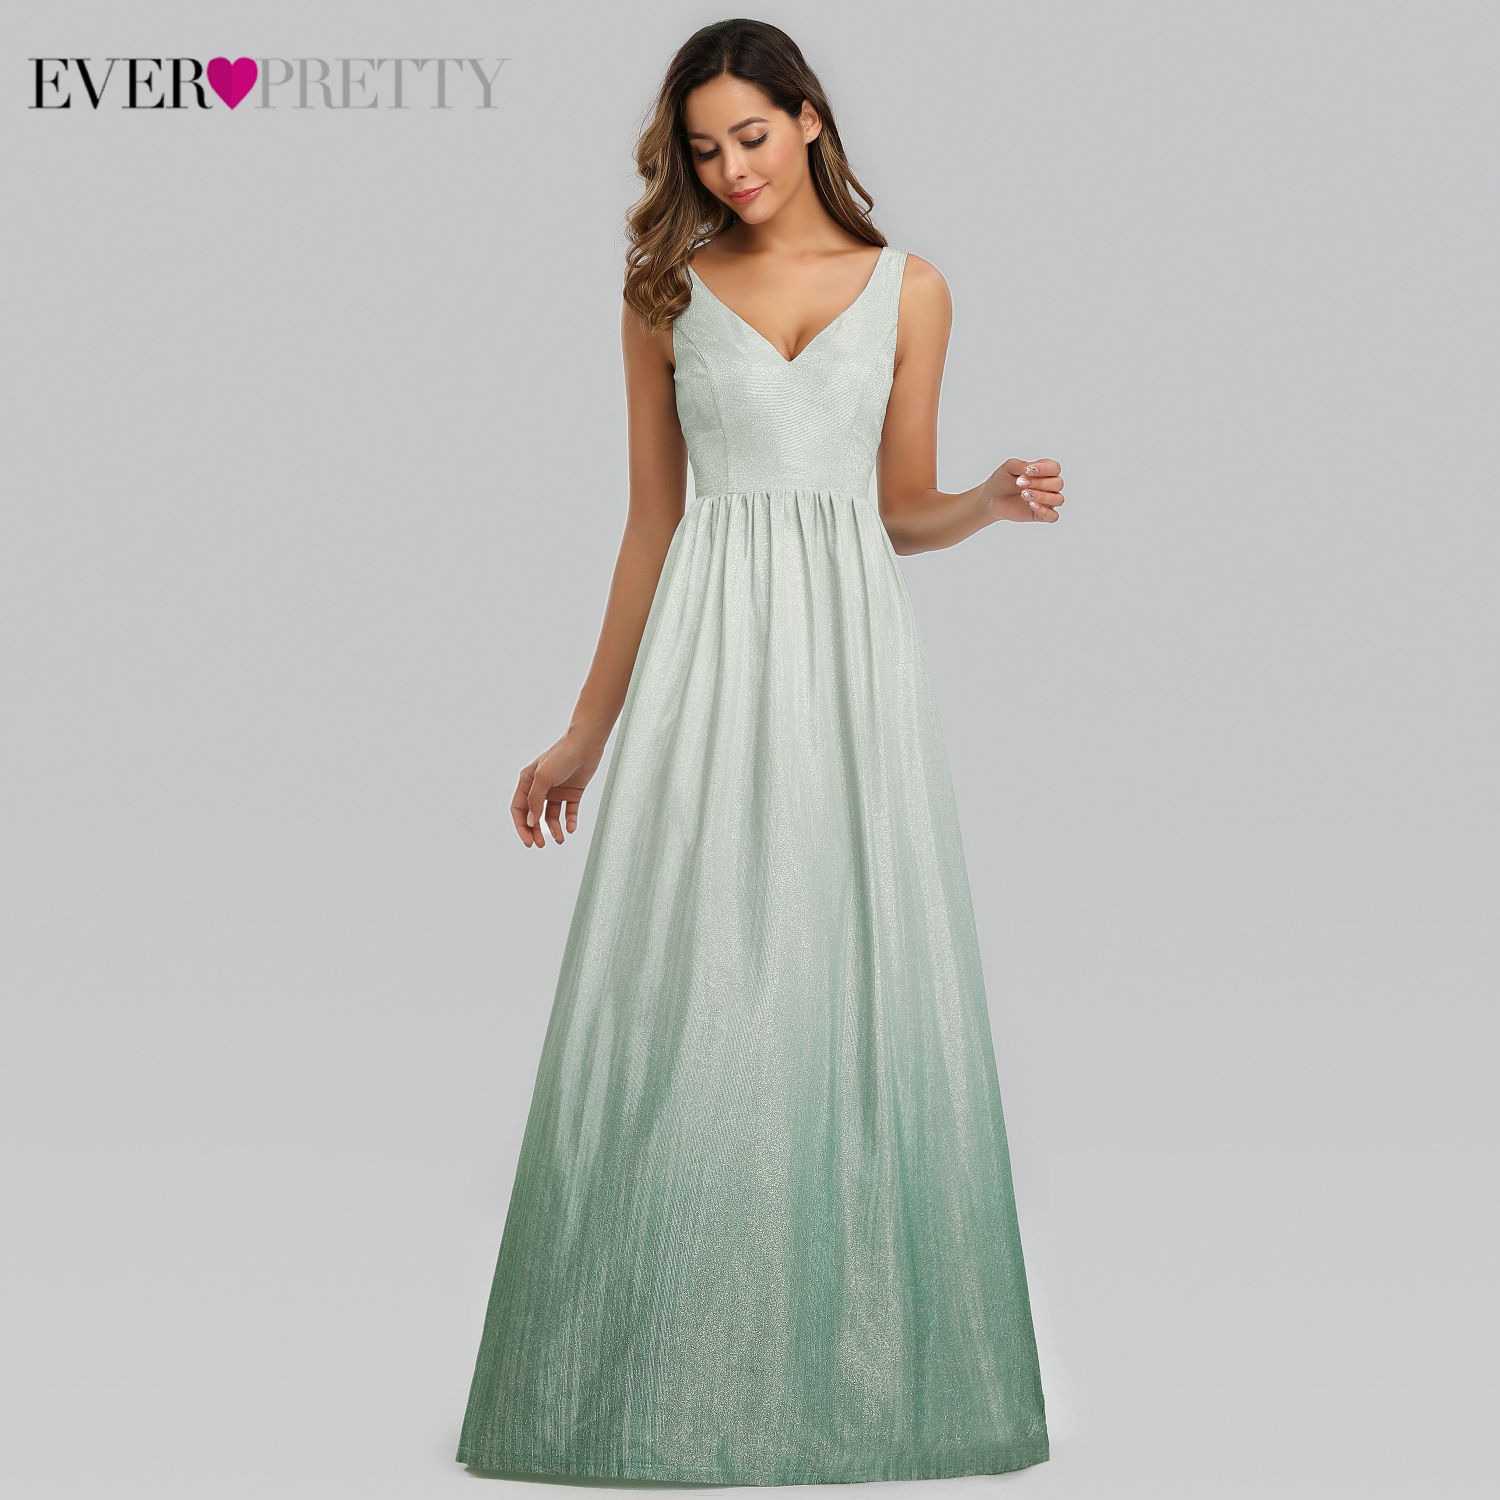 Ever Pretty Simple Evening Dresses A-Line Double V-Neck Sleeveless Sparkle Long Formal Gowns Abiye Gece Elbisesi 2019